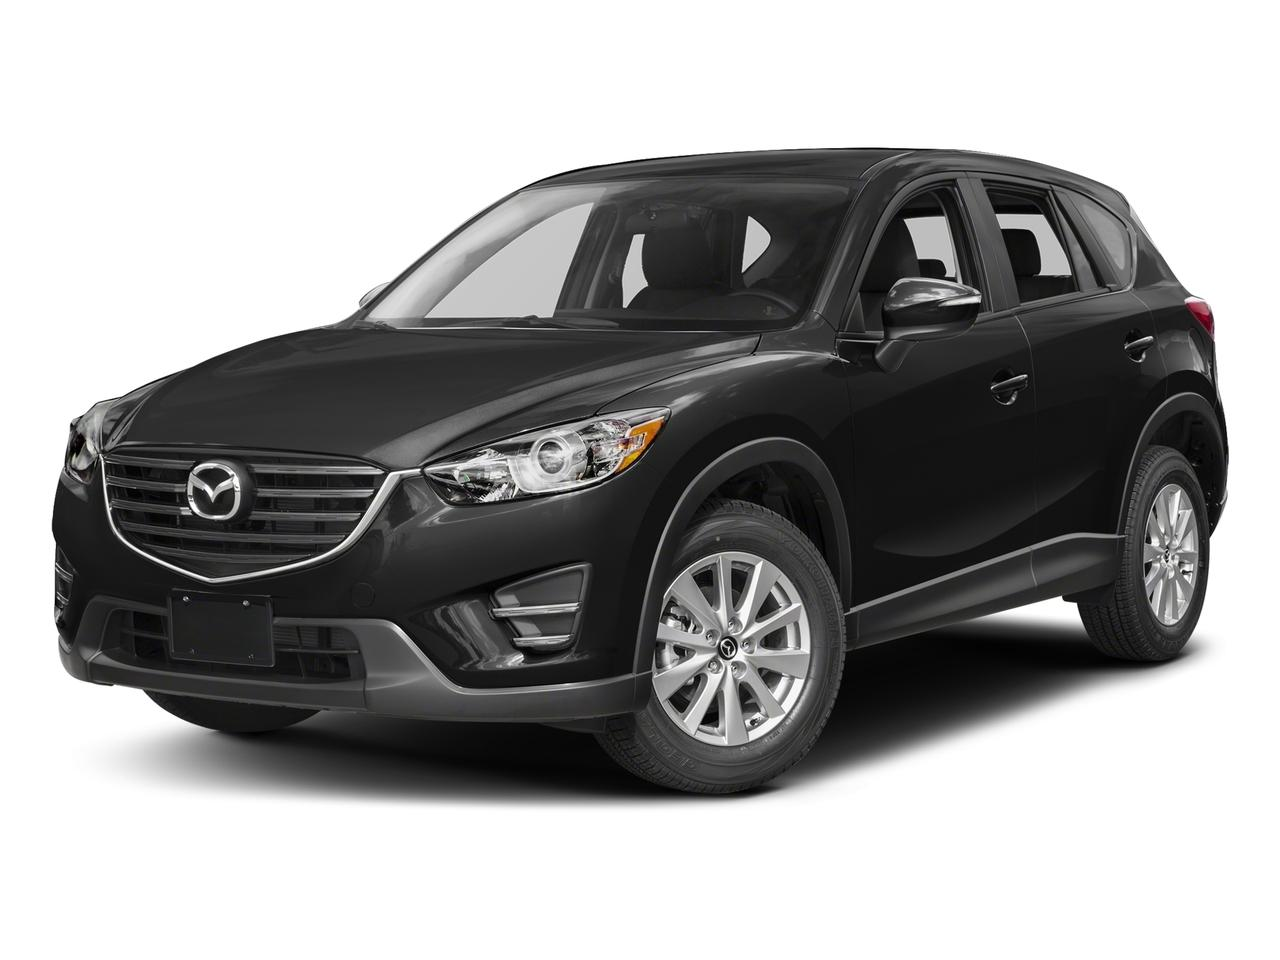 2016 Mazda CX-5 Vehicle Photo in Edinburg, TX 78542